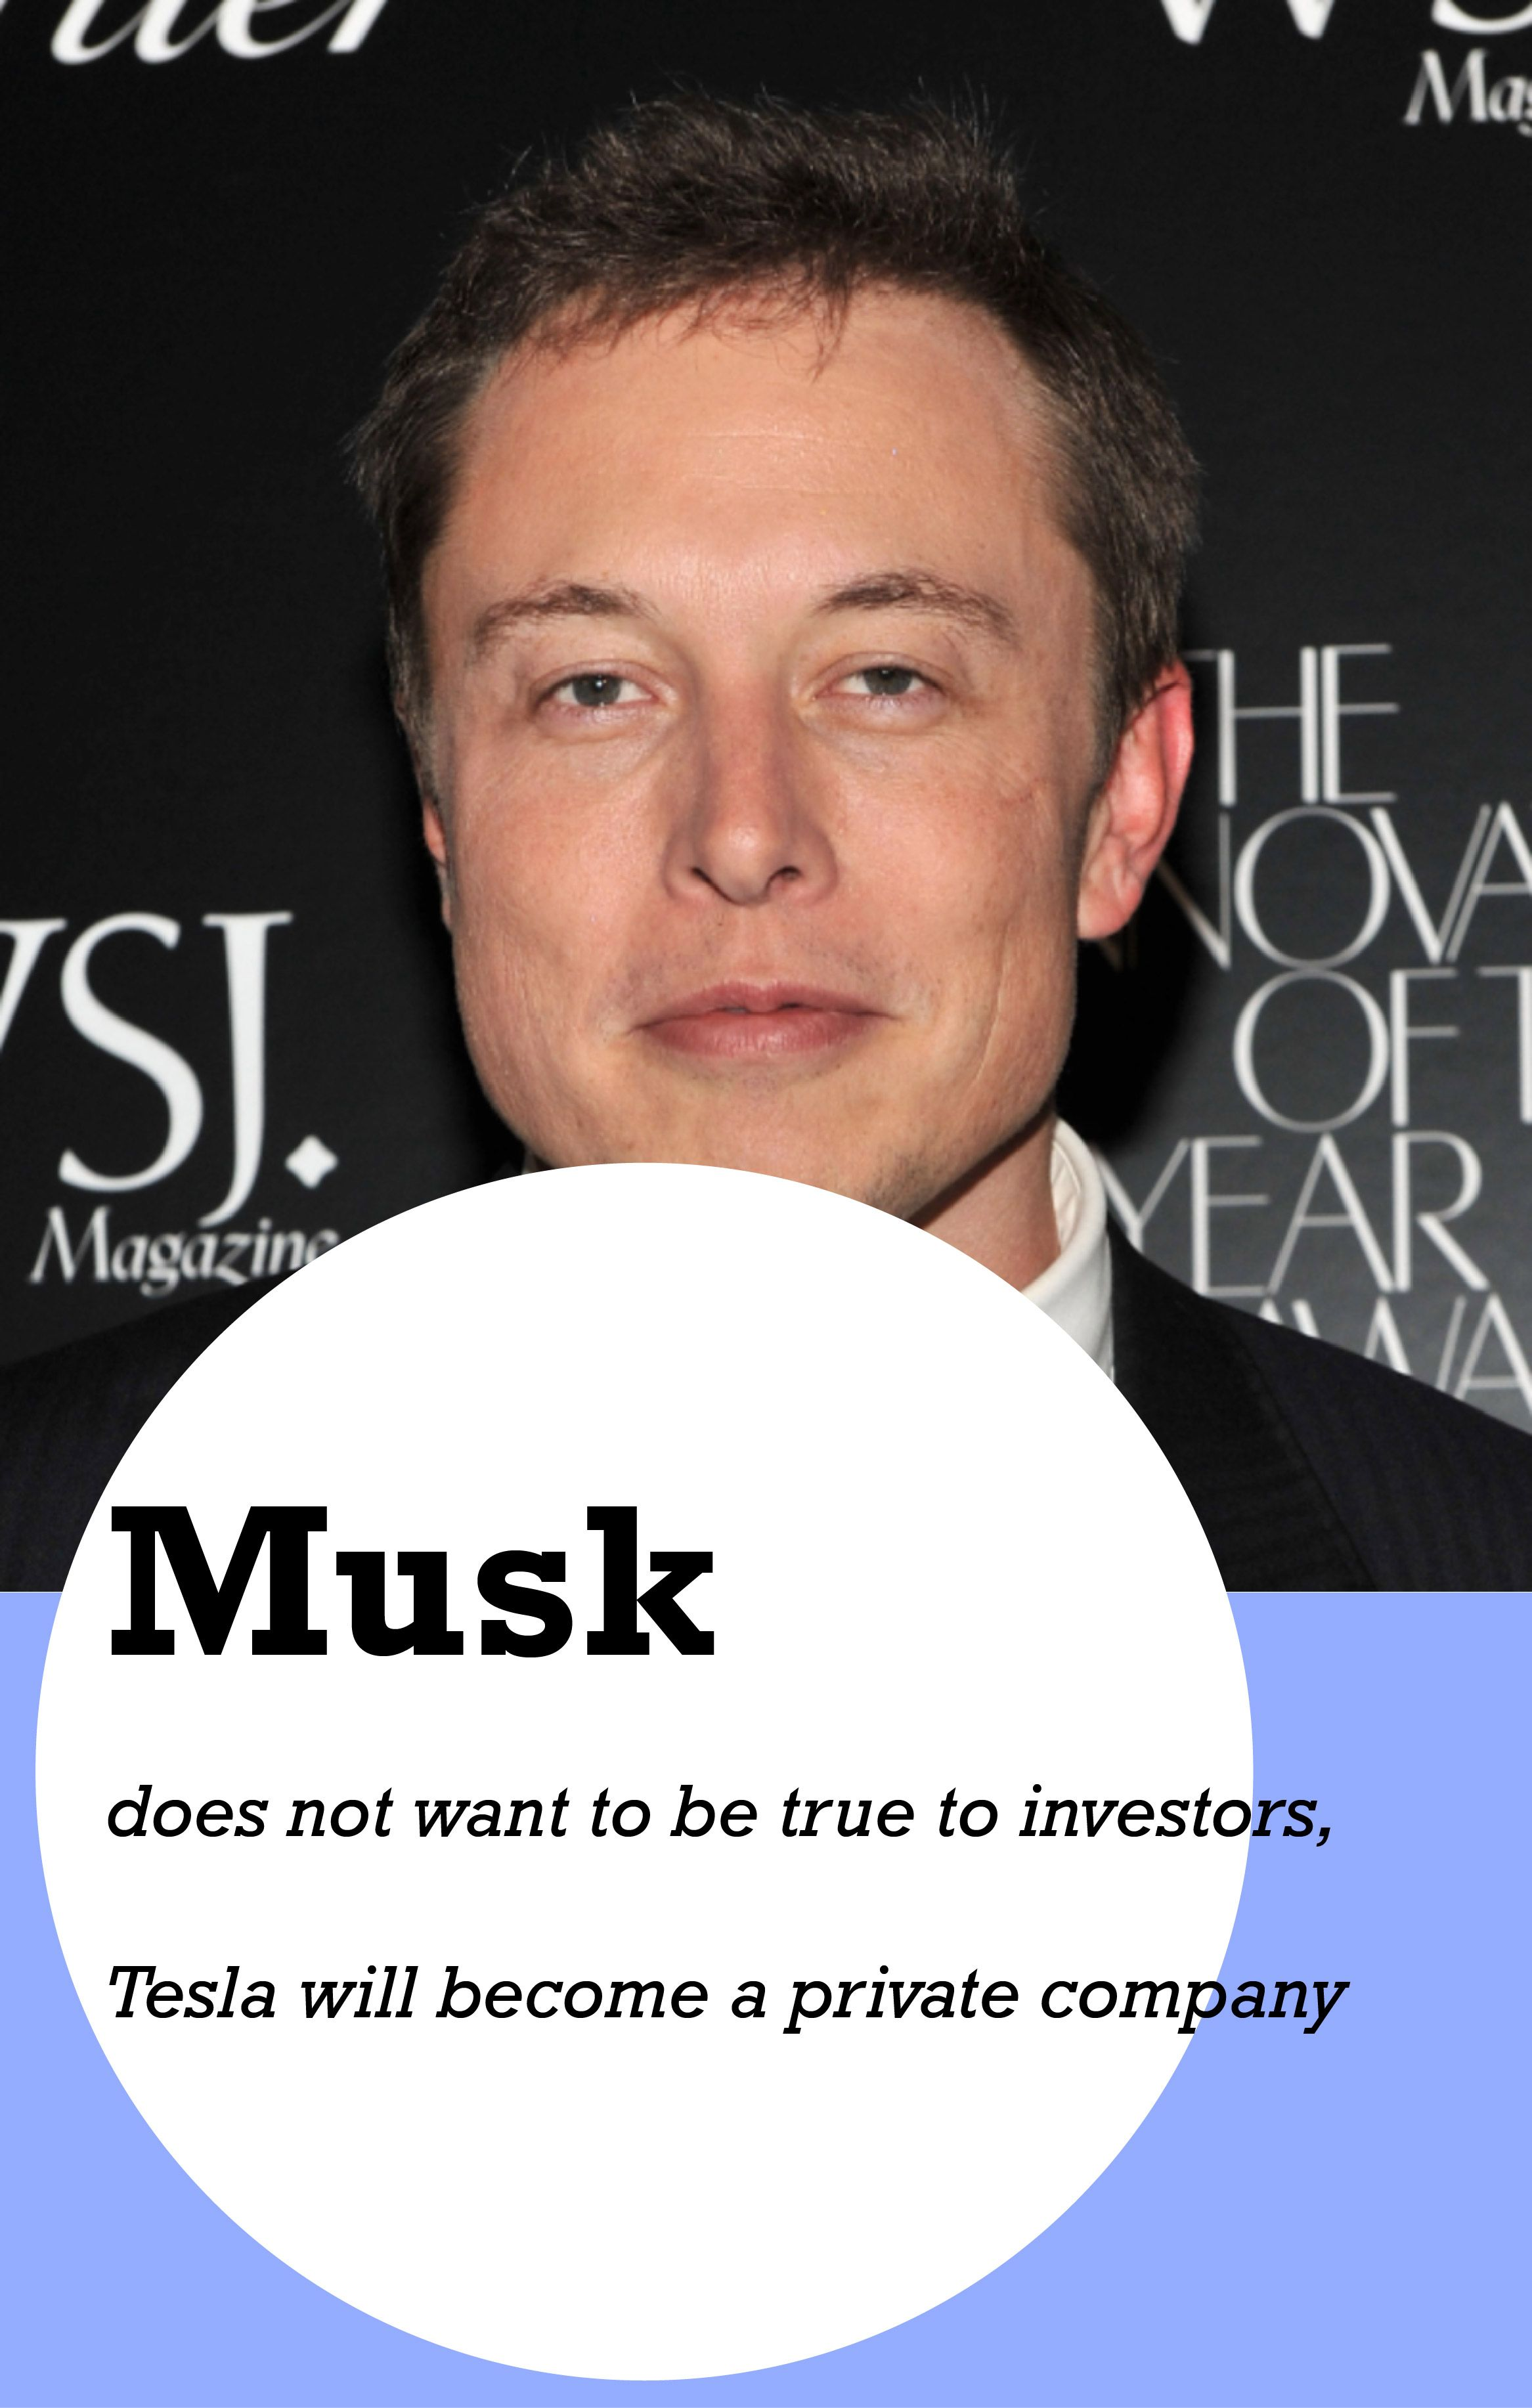 Musk does not want to be true to investors tesla will